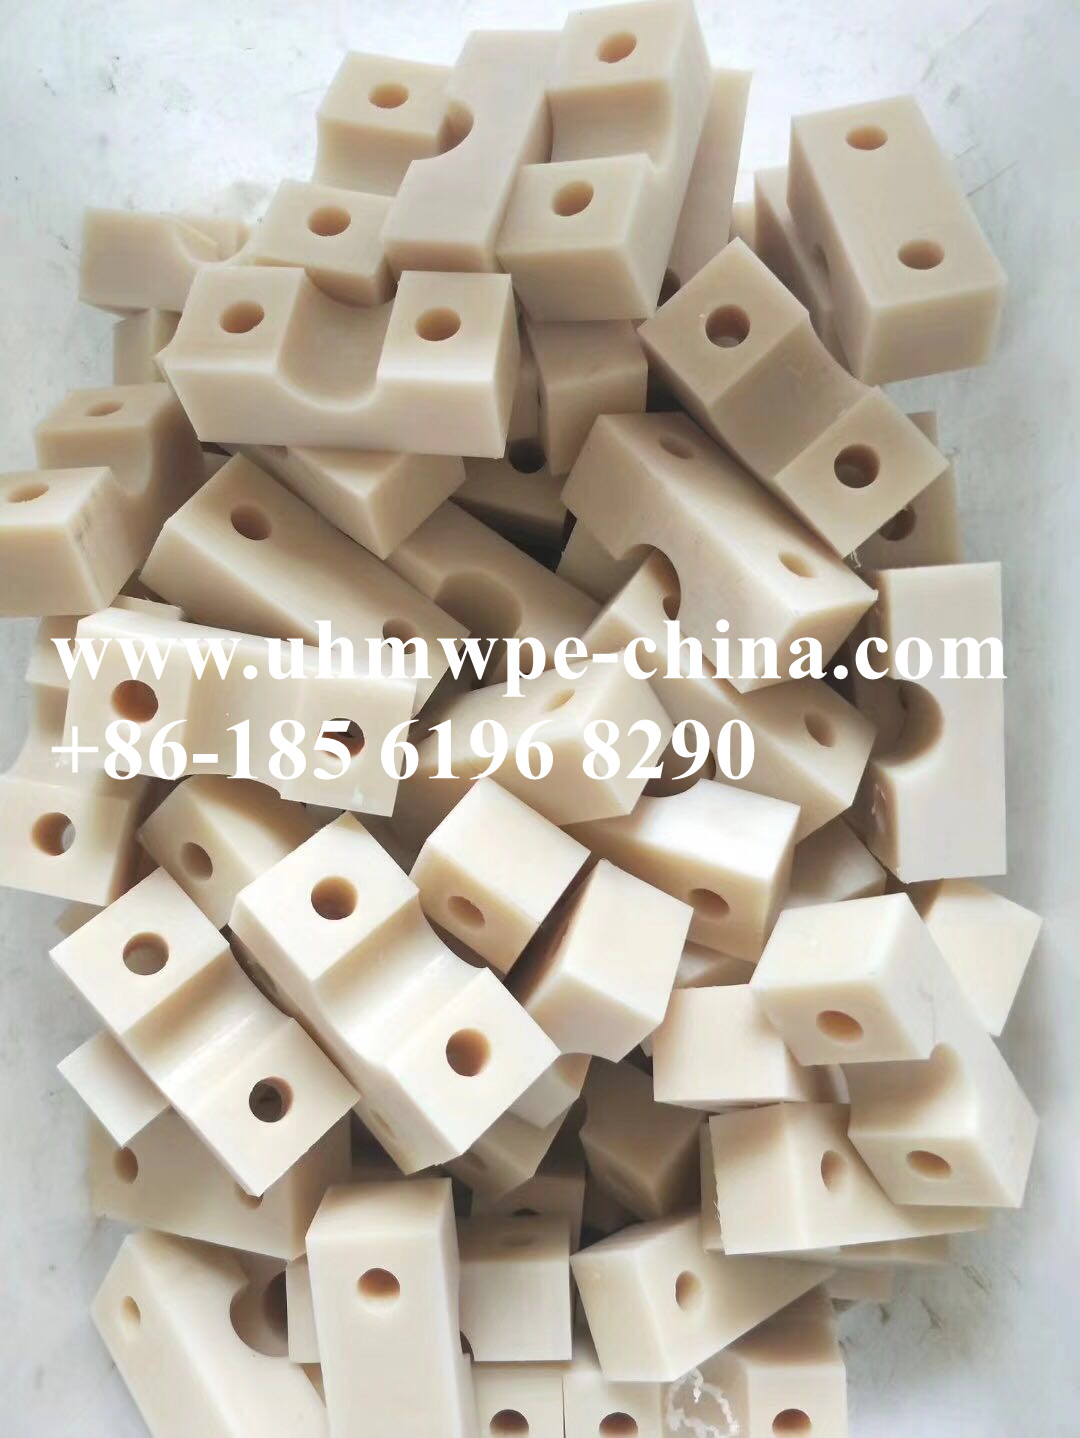 Drawing Customize UHMWPE Machined Component Block